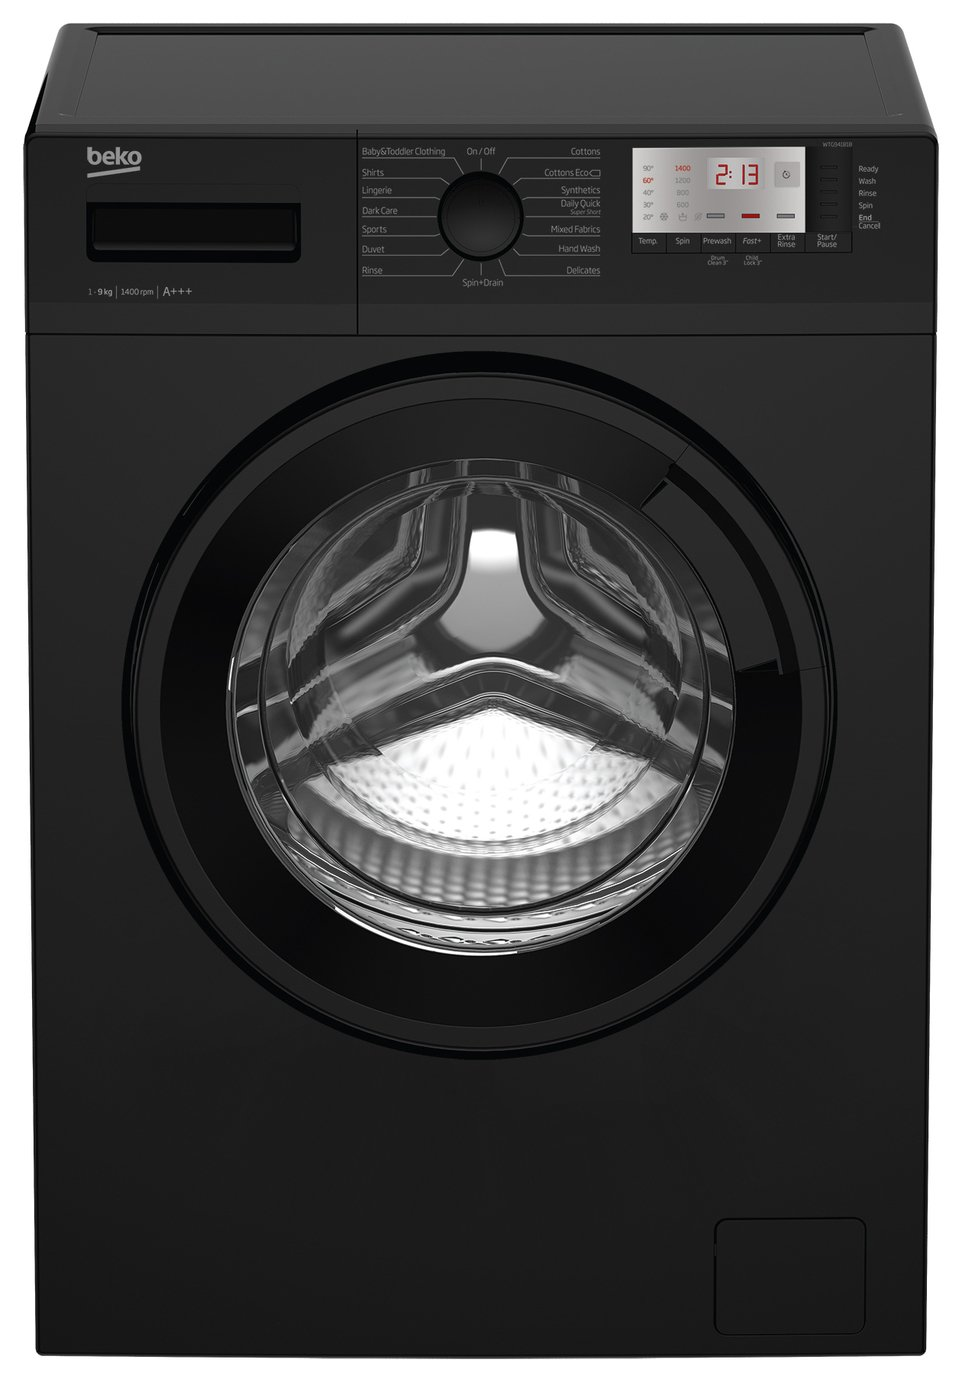 Image of Beko WTG941B1B 9KG 1400 Spin Washing Machine - Black